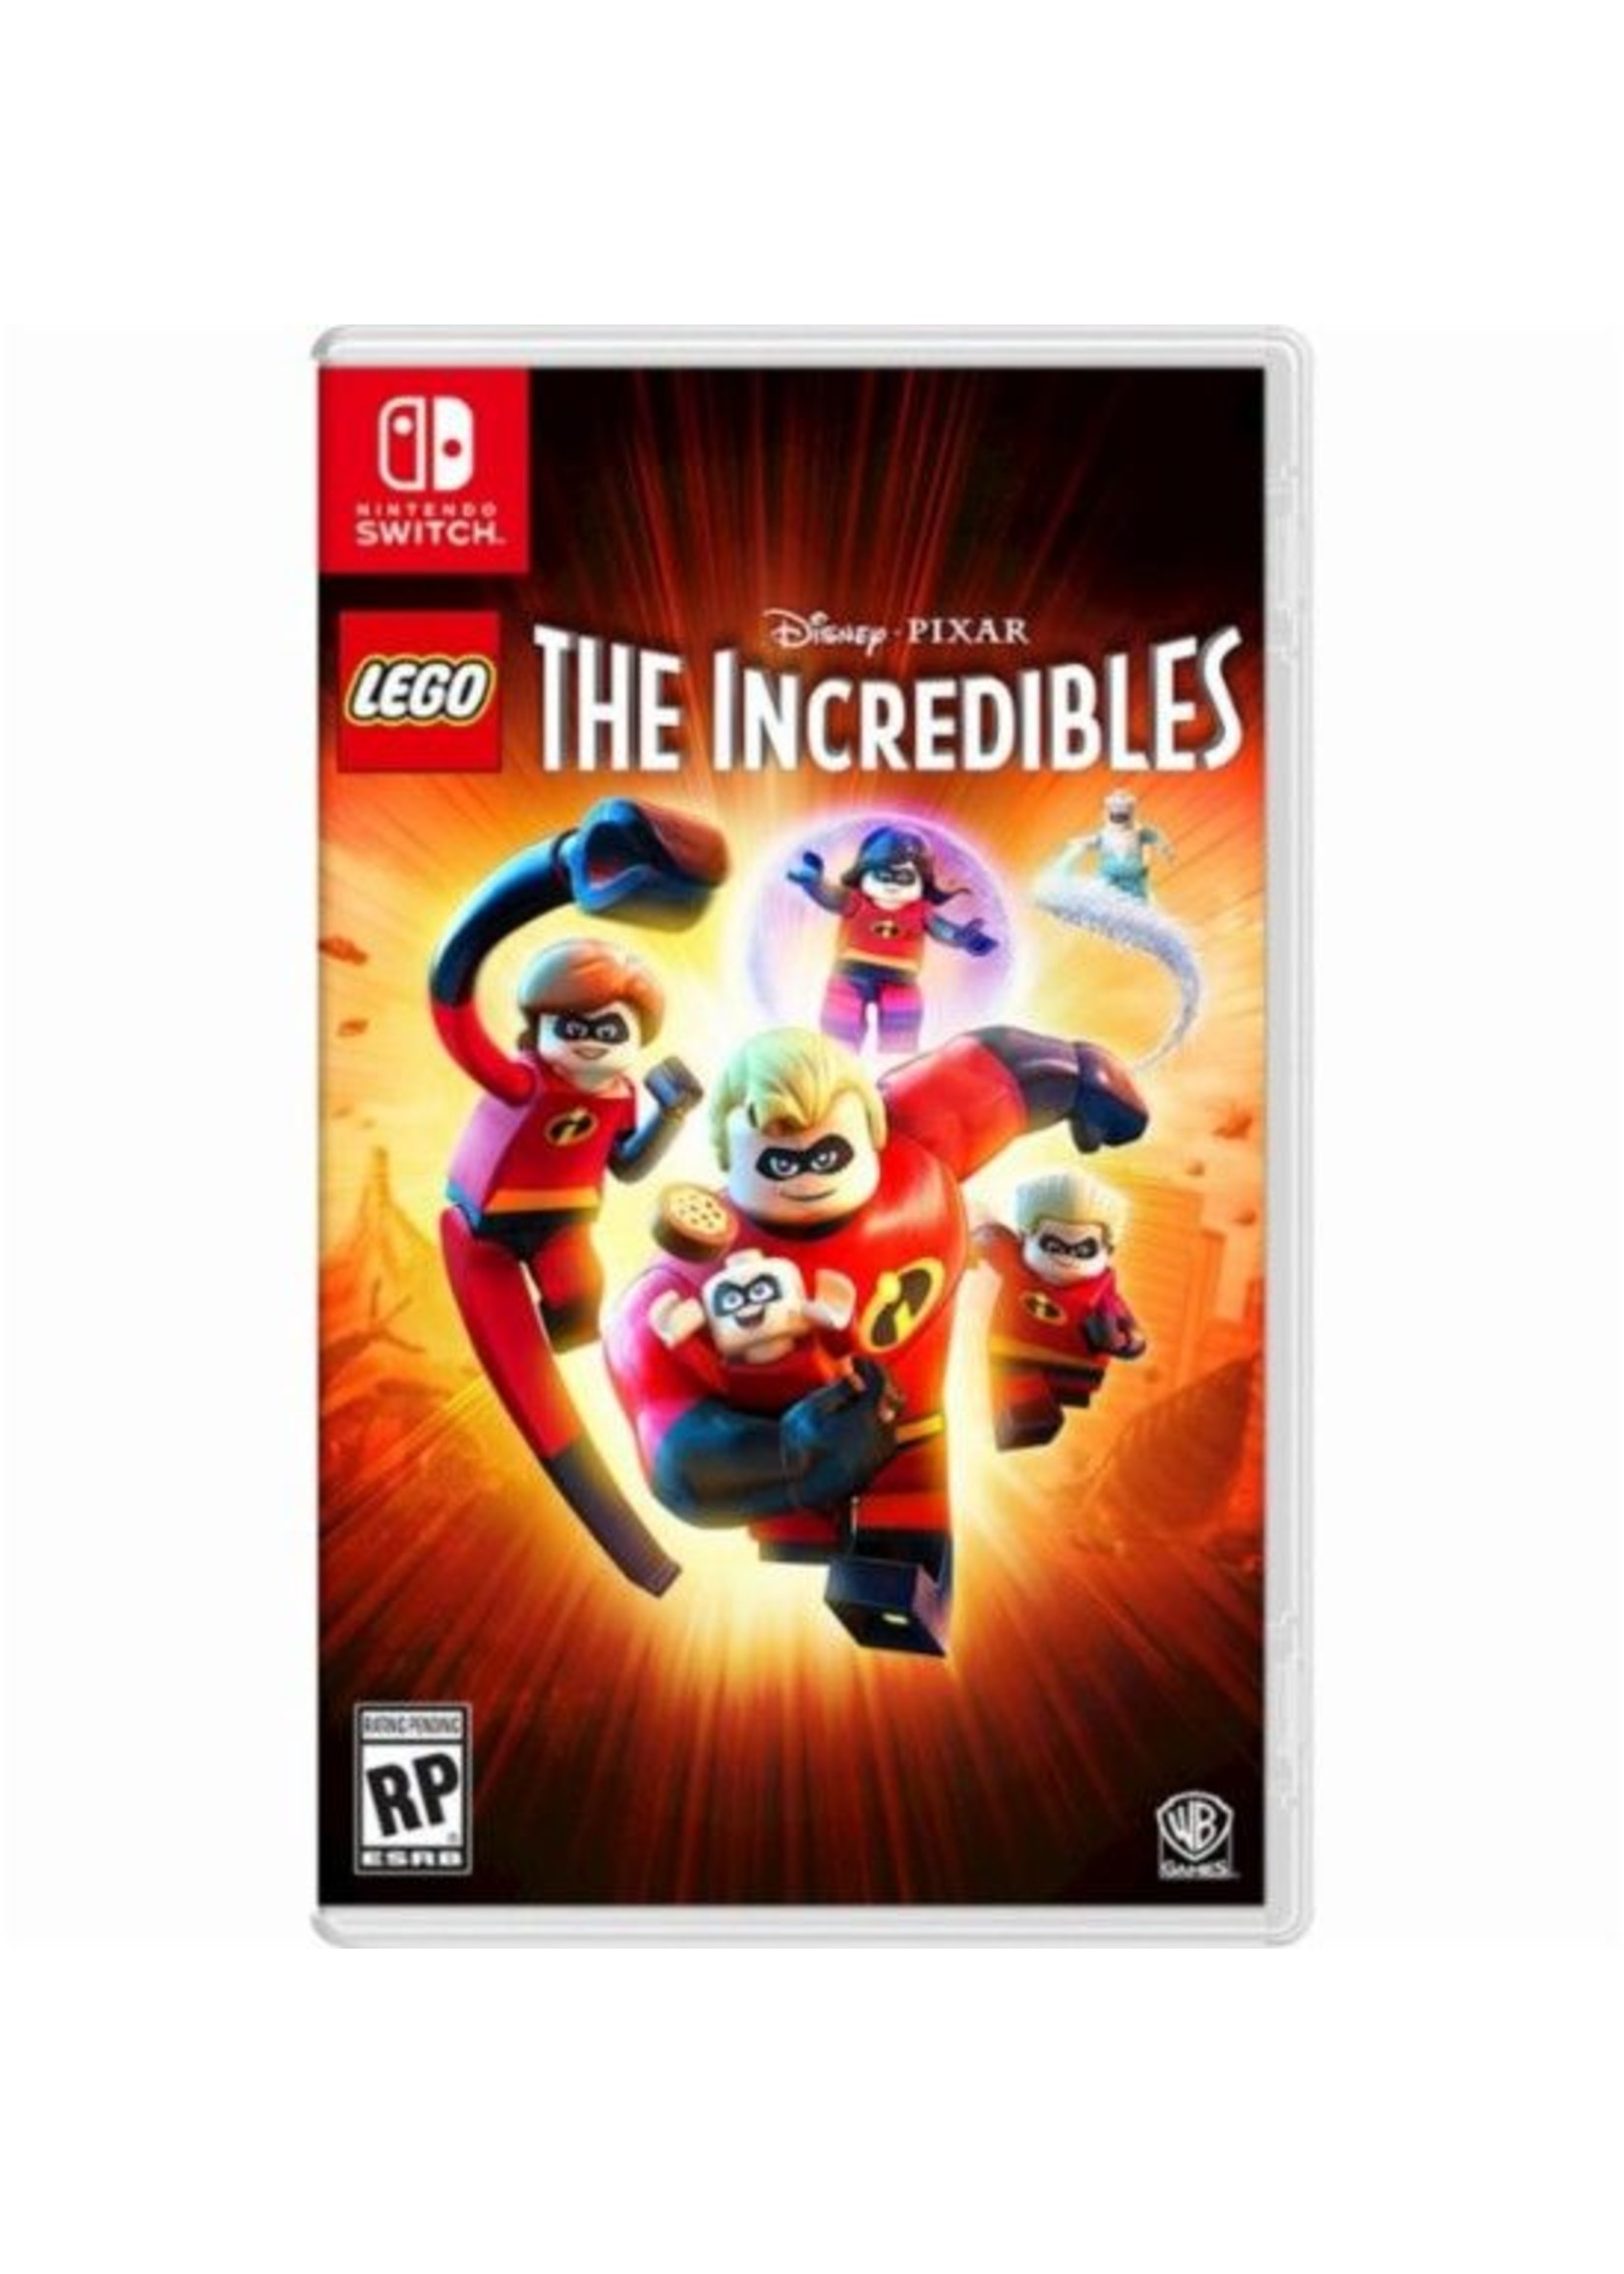 LEGO The Incredibles - SWITCH NEW